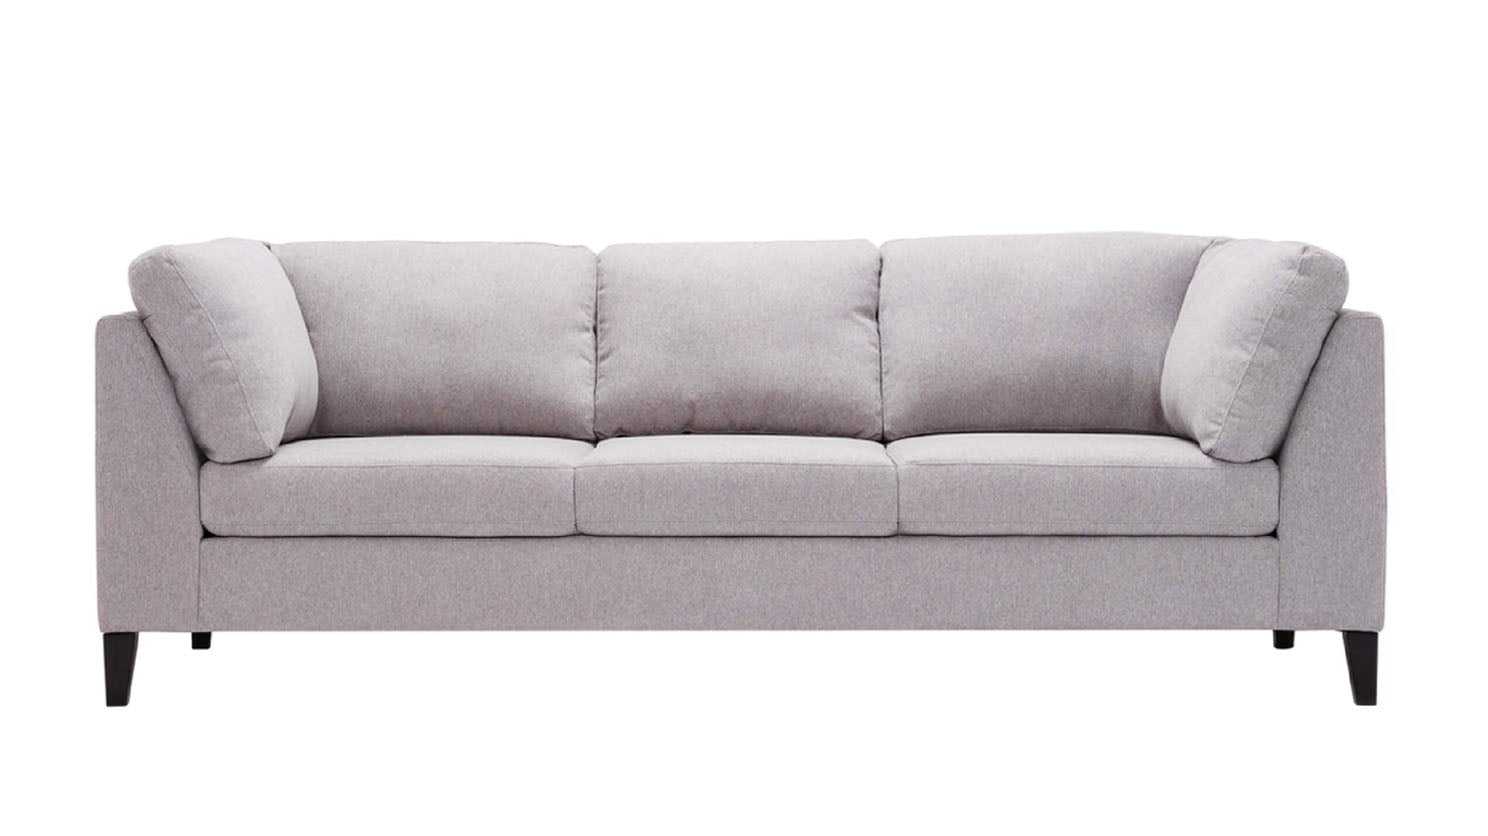 salema sofa - fabric